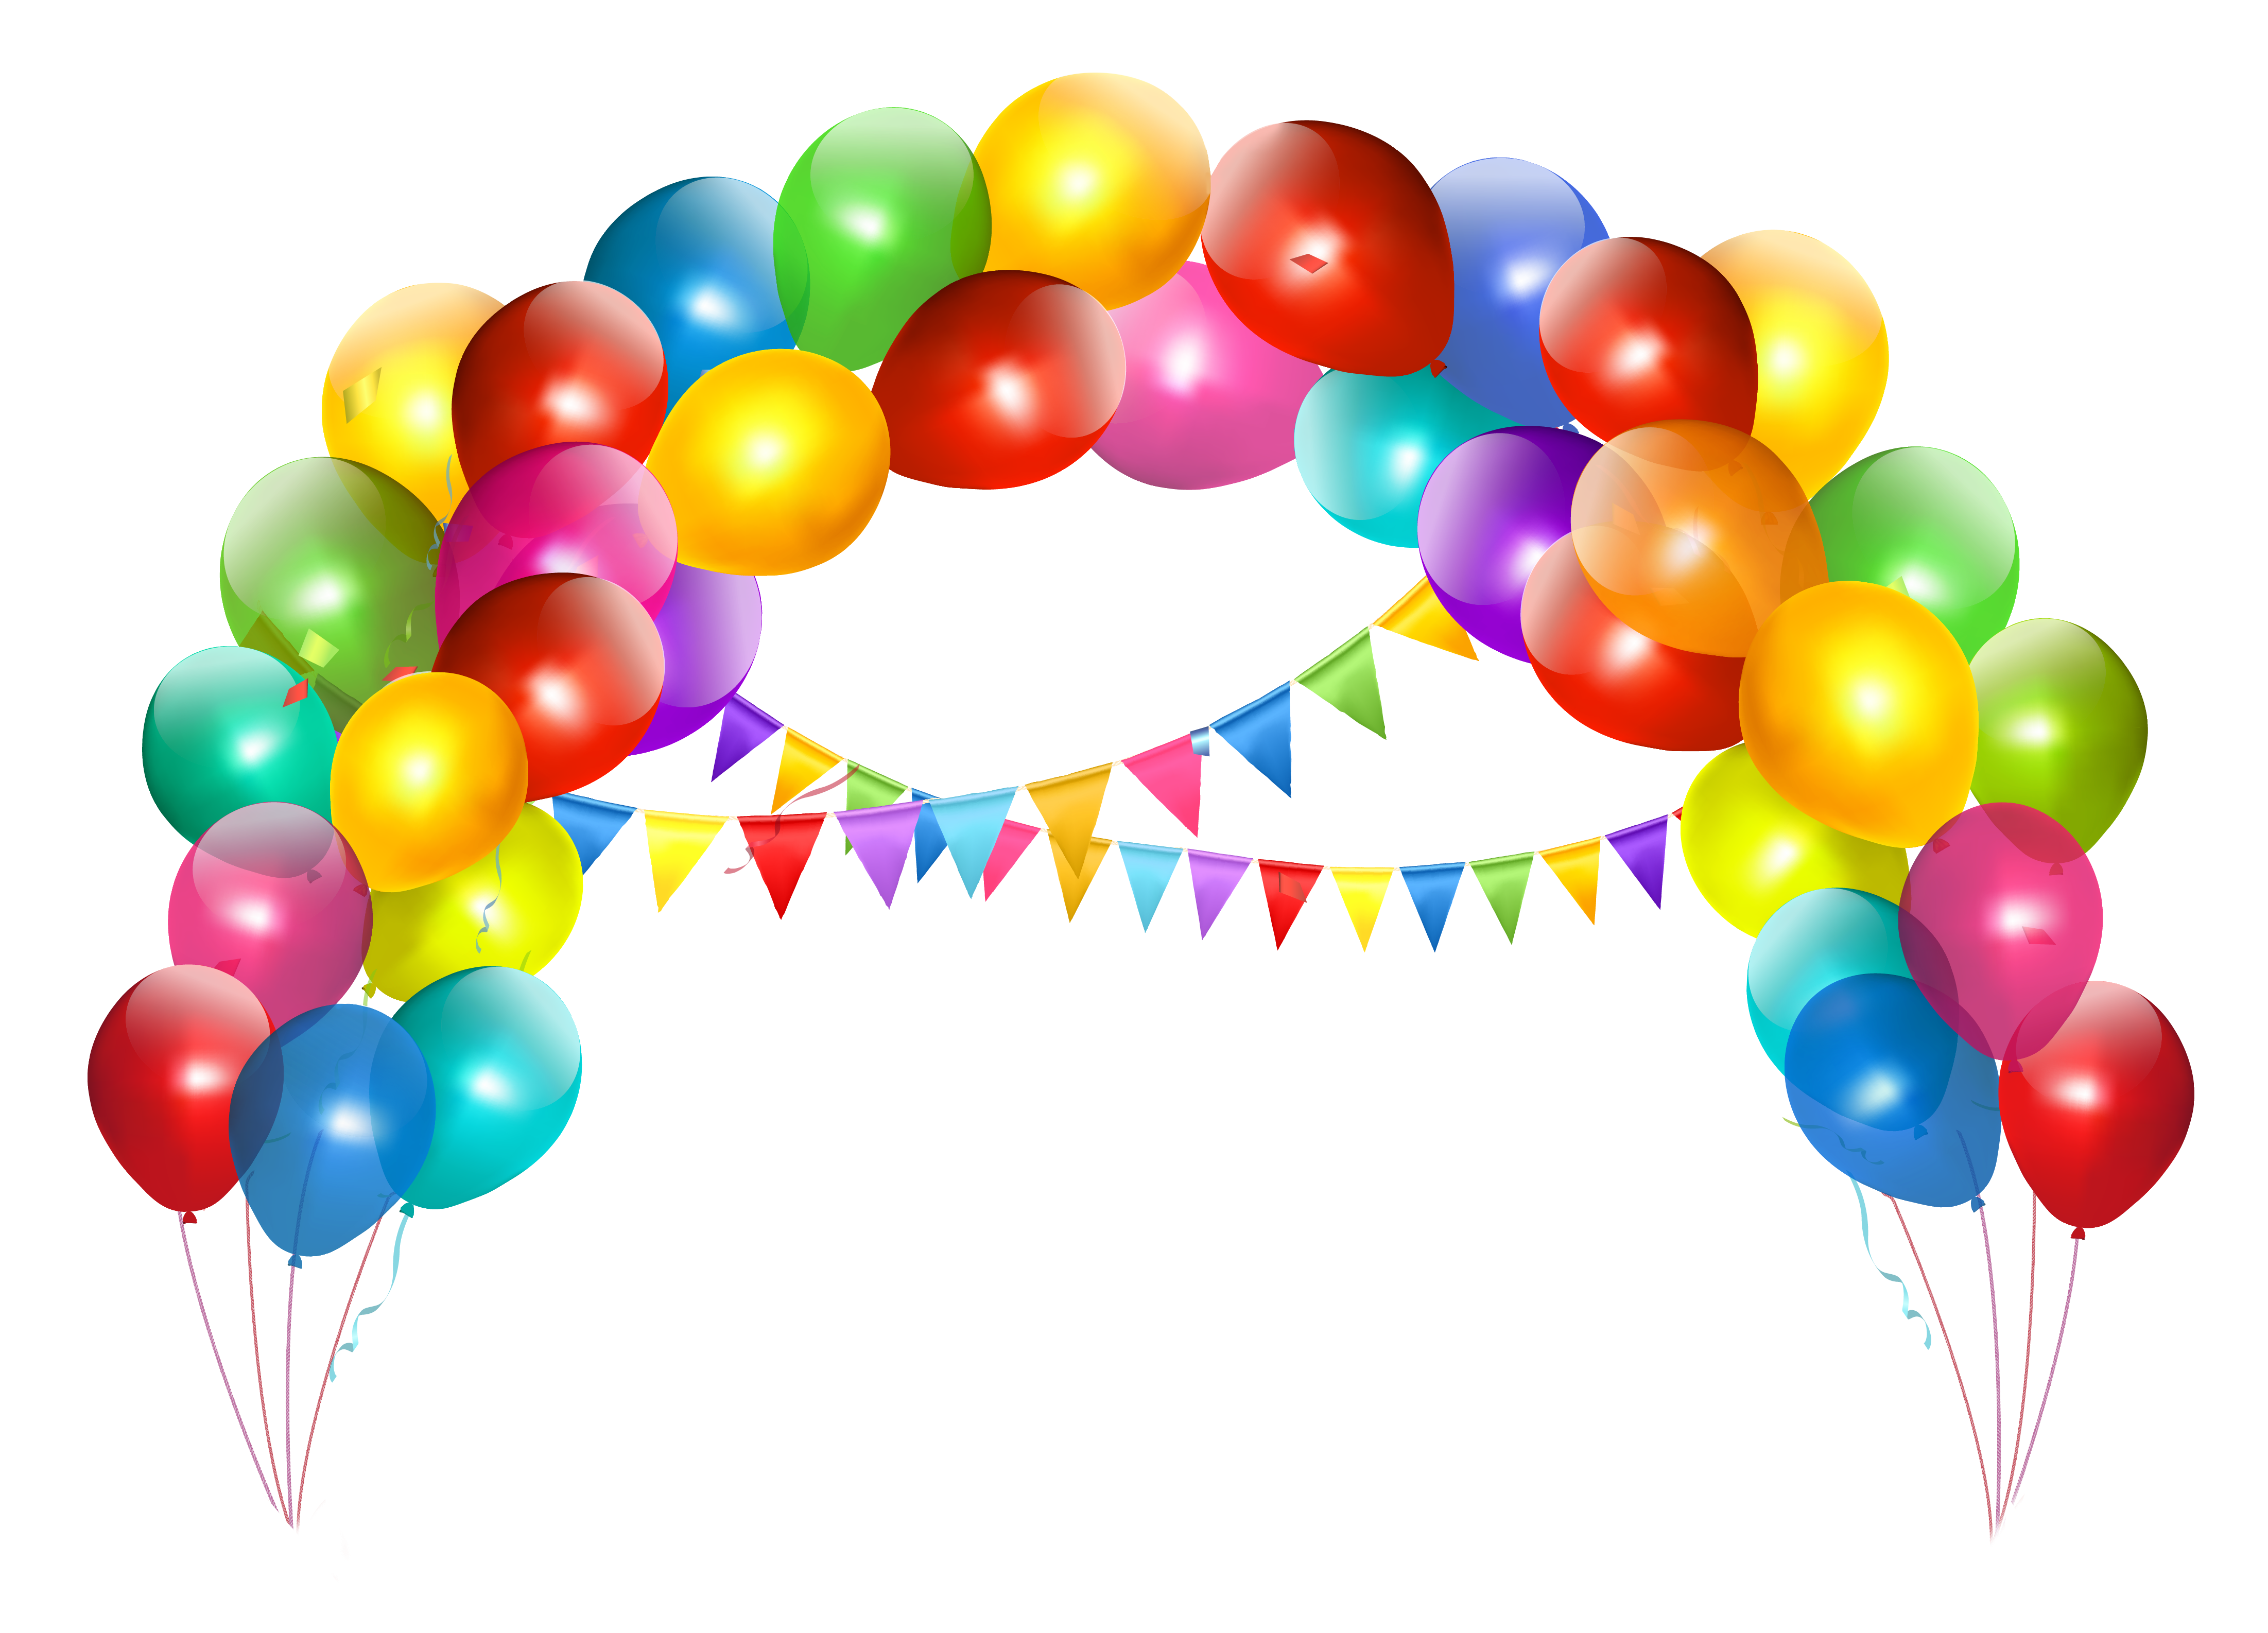 Balloons clipart clear background. Transparent lacalabaza clip art